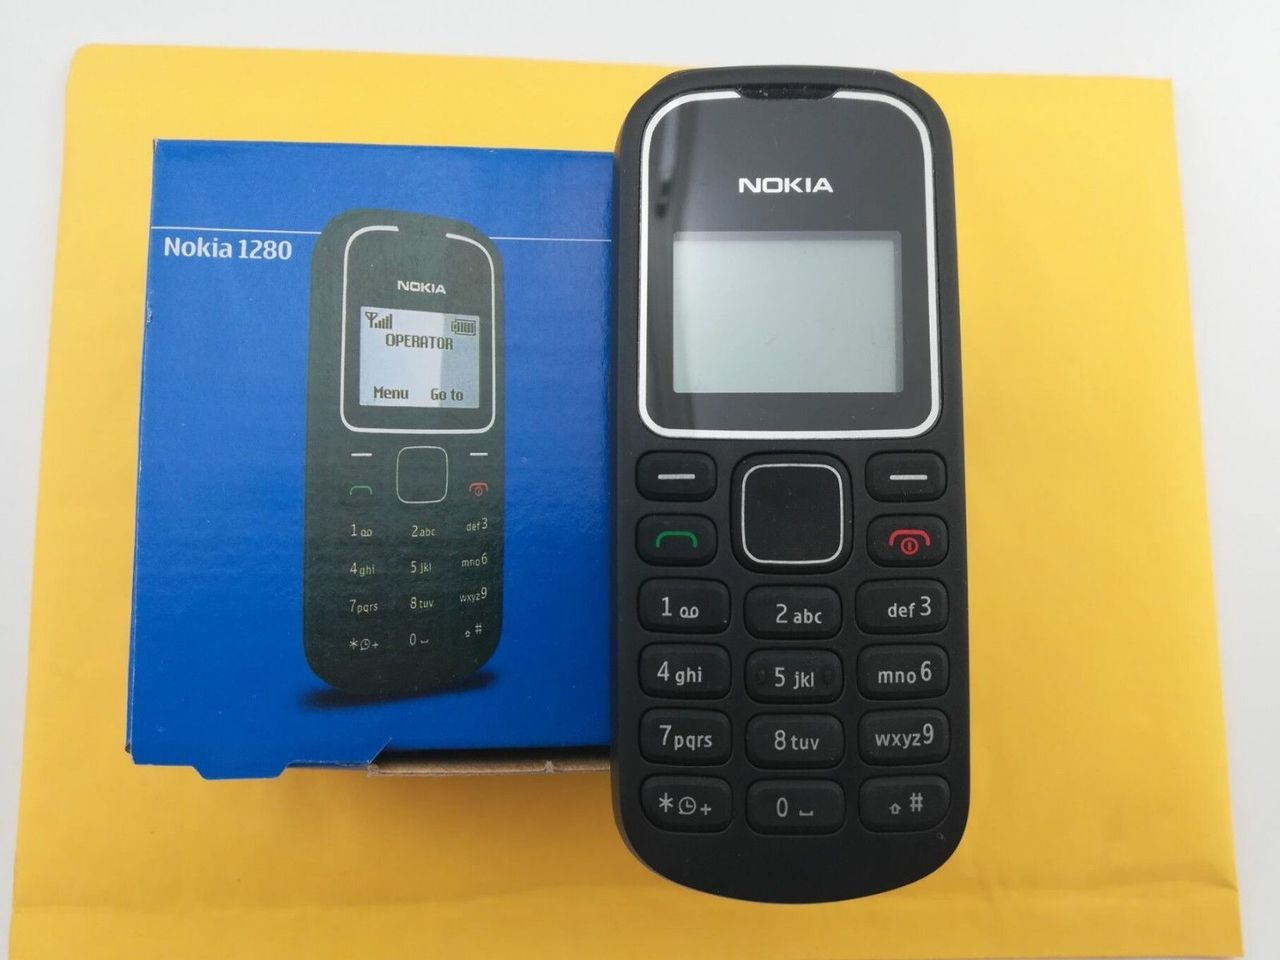 Refurbished phone mobile phone Nokia 1280 Unlocked Wholesale 1280 GSM Cheap Cell phone blue 11